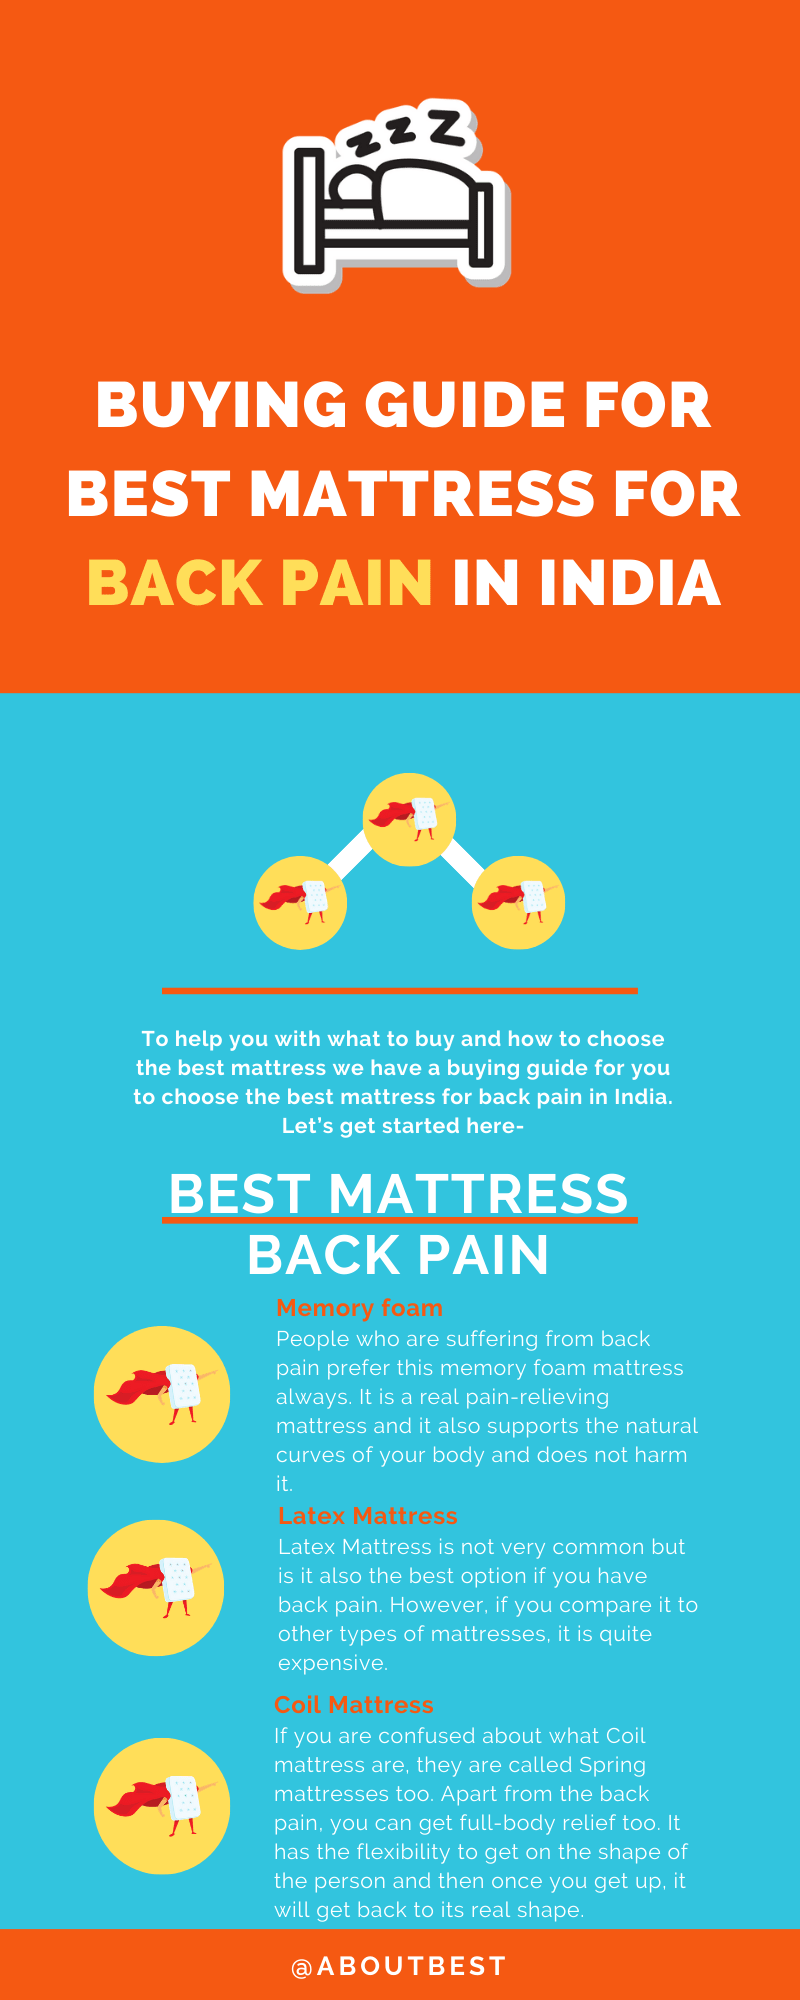 Buying guide for Best Mattress for Back Pain in India